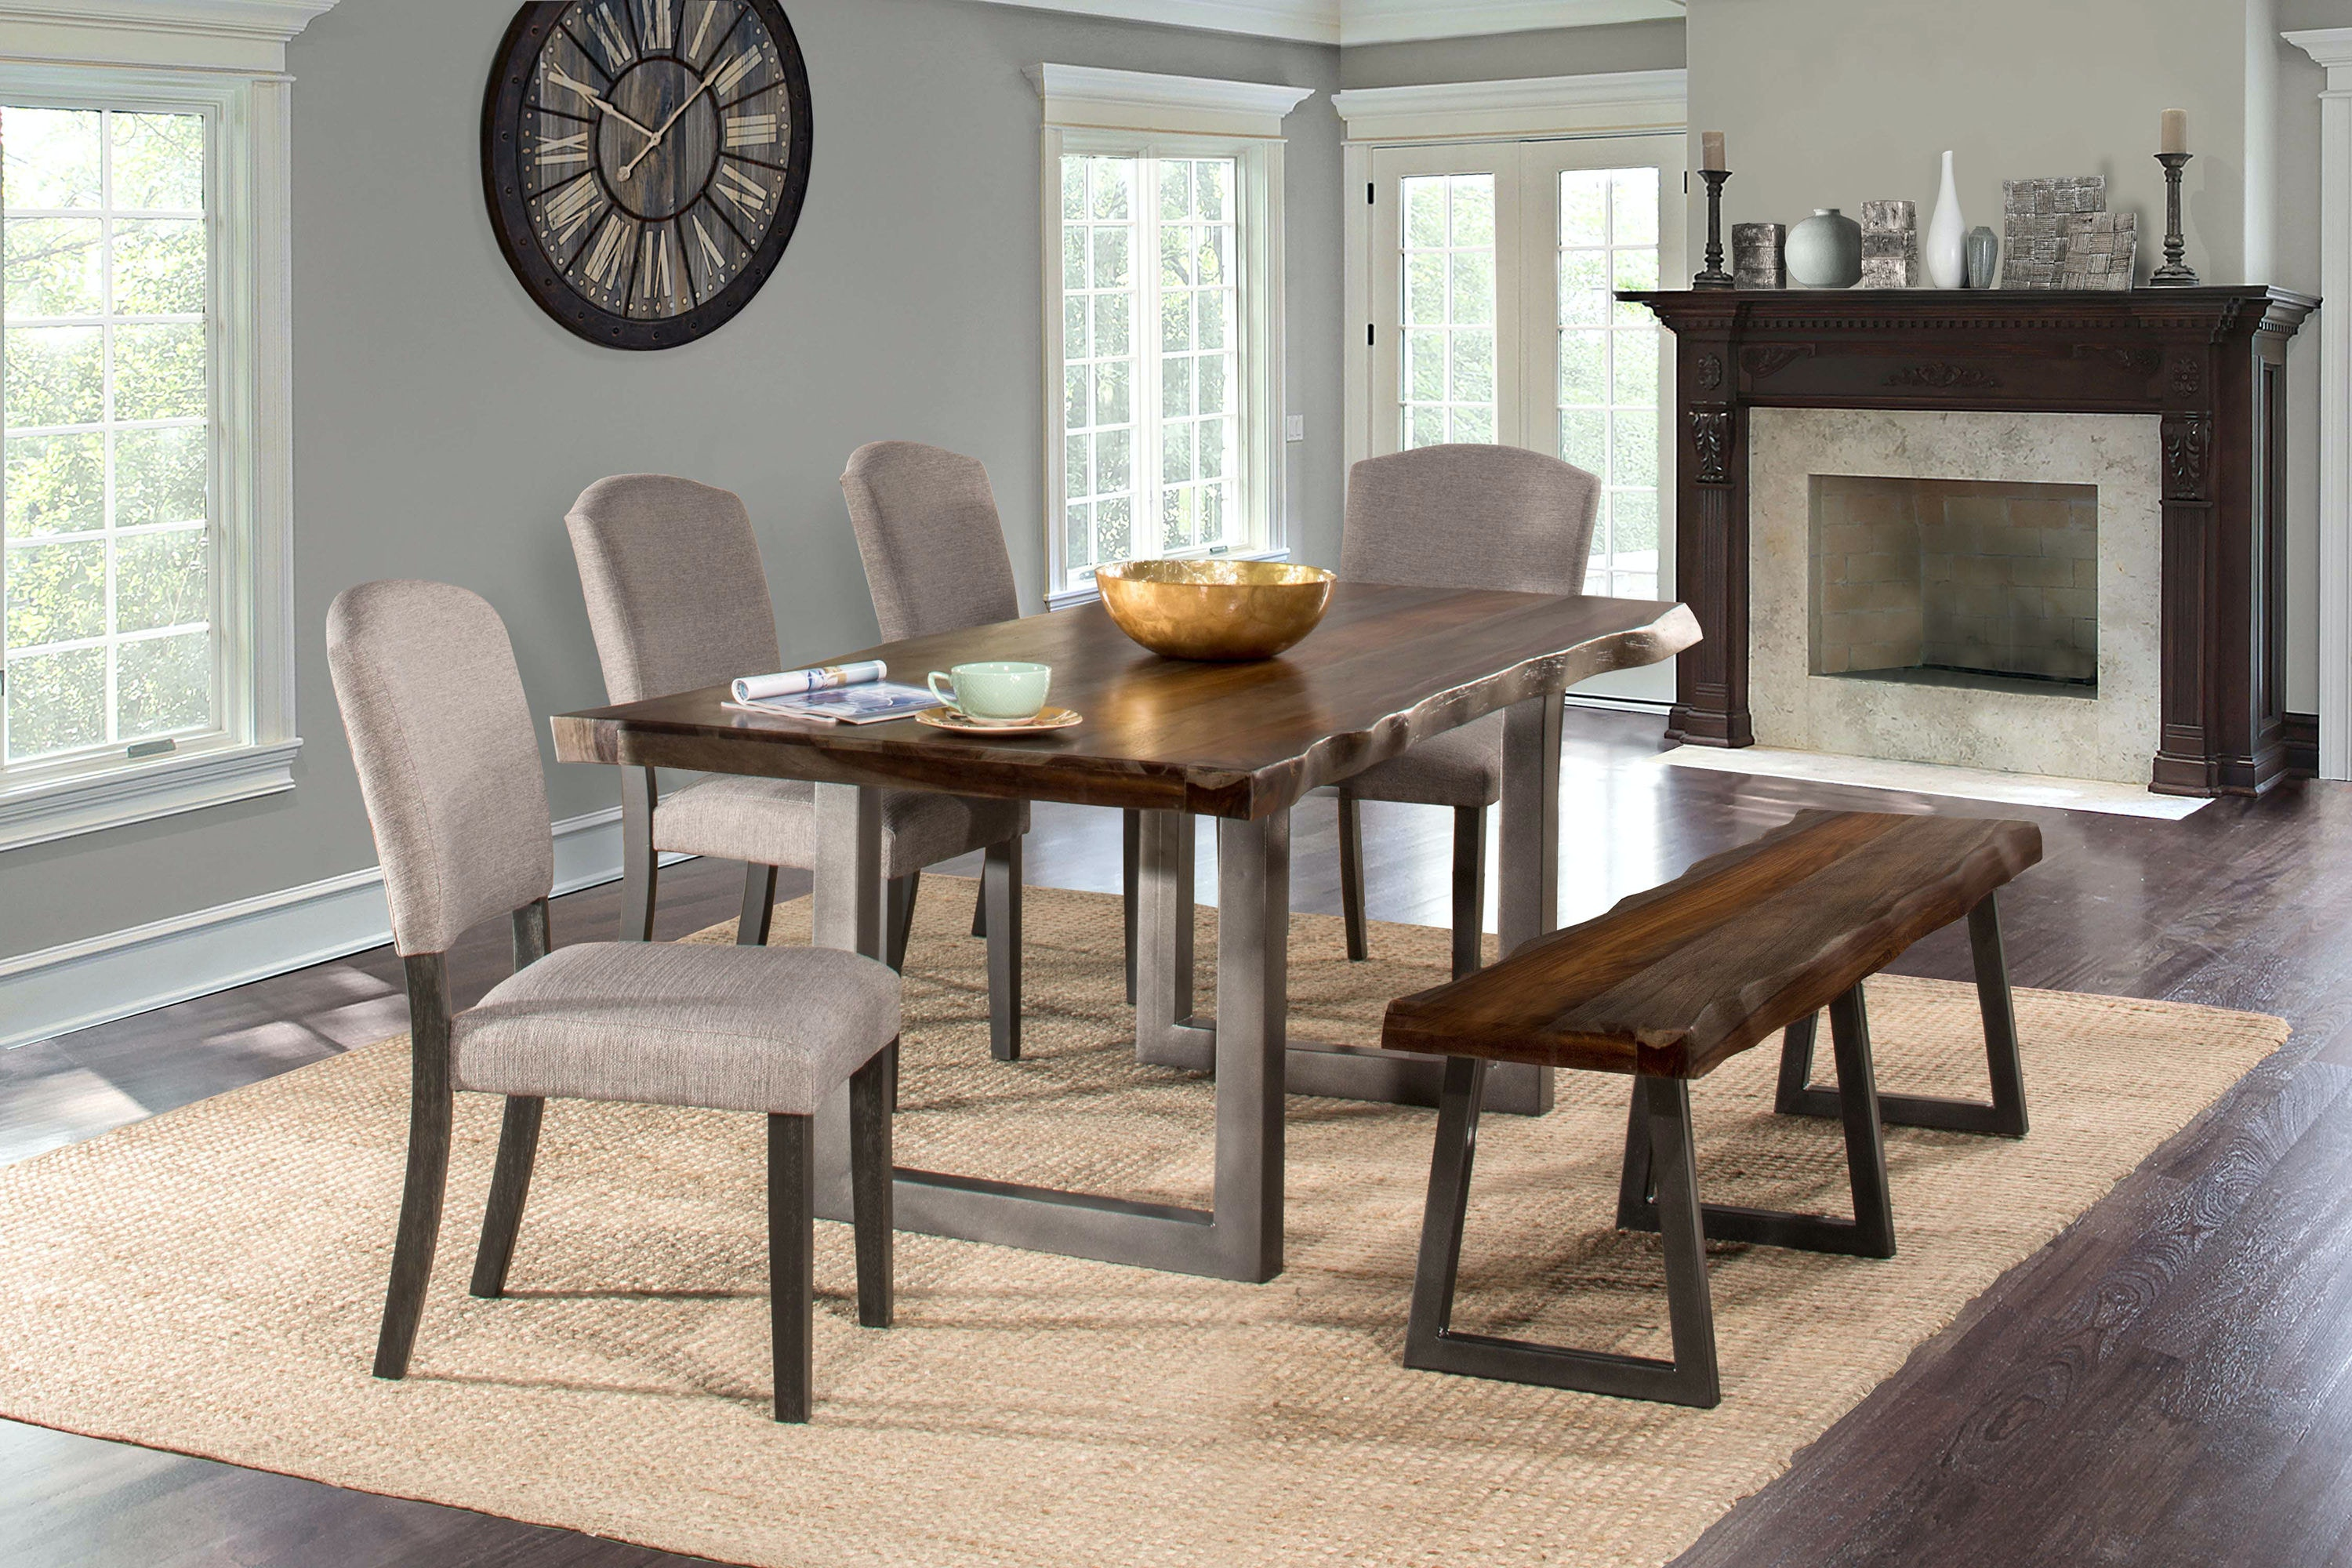 Hillsdale Furniture Emerson 6 Piece Rectangle Dining Set With One (1) Bench  And